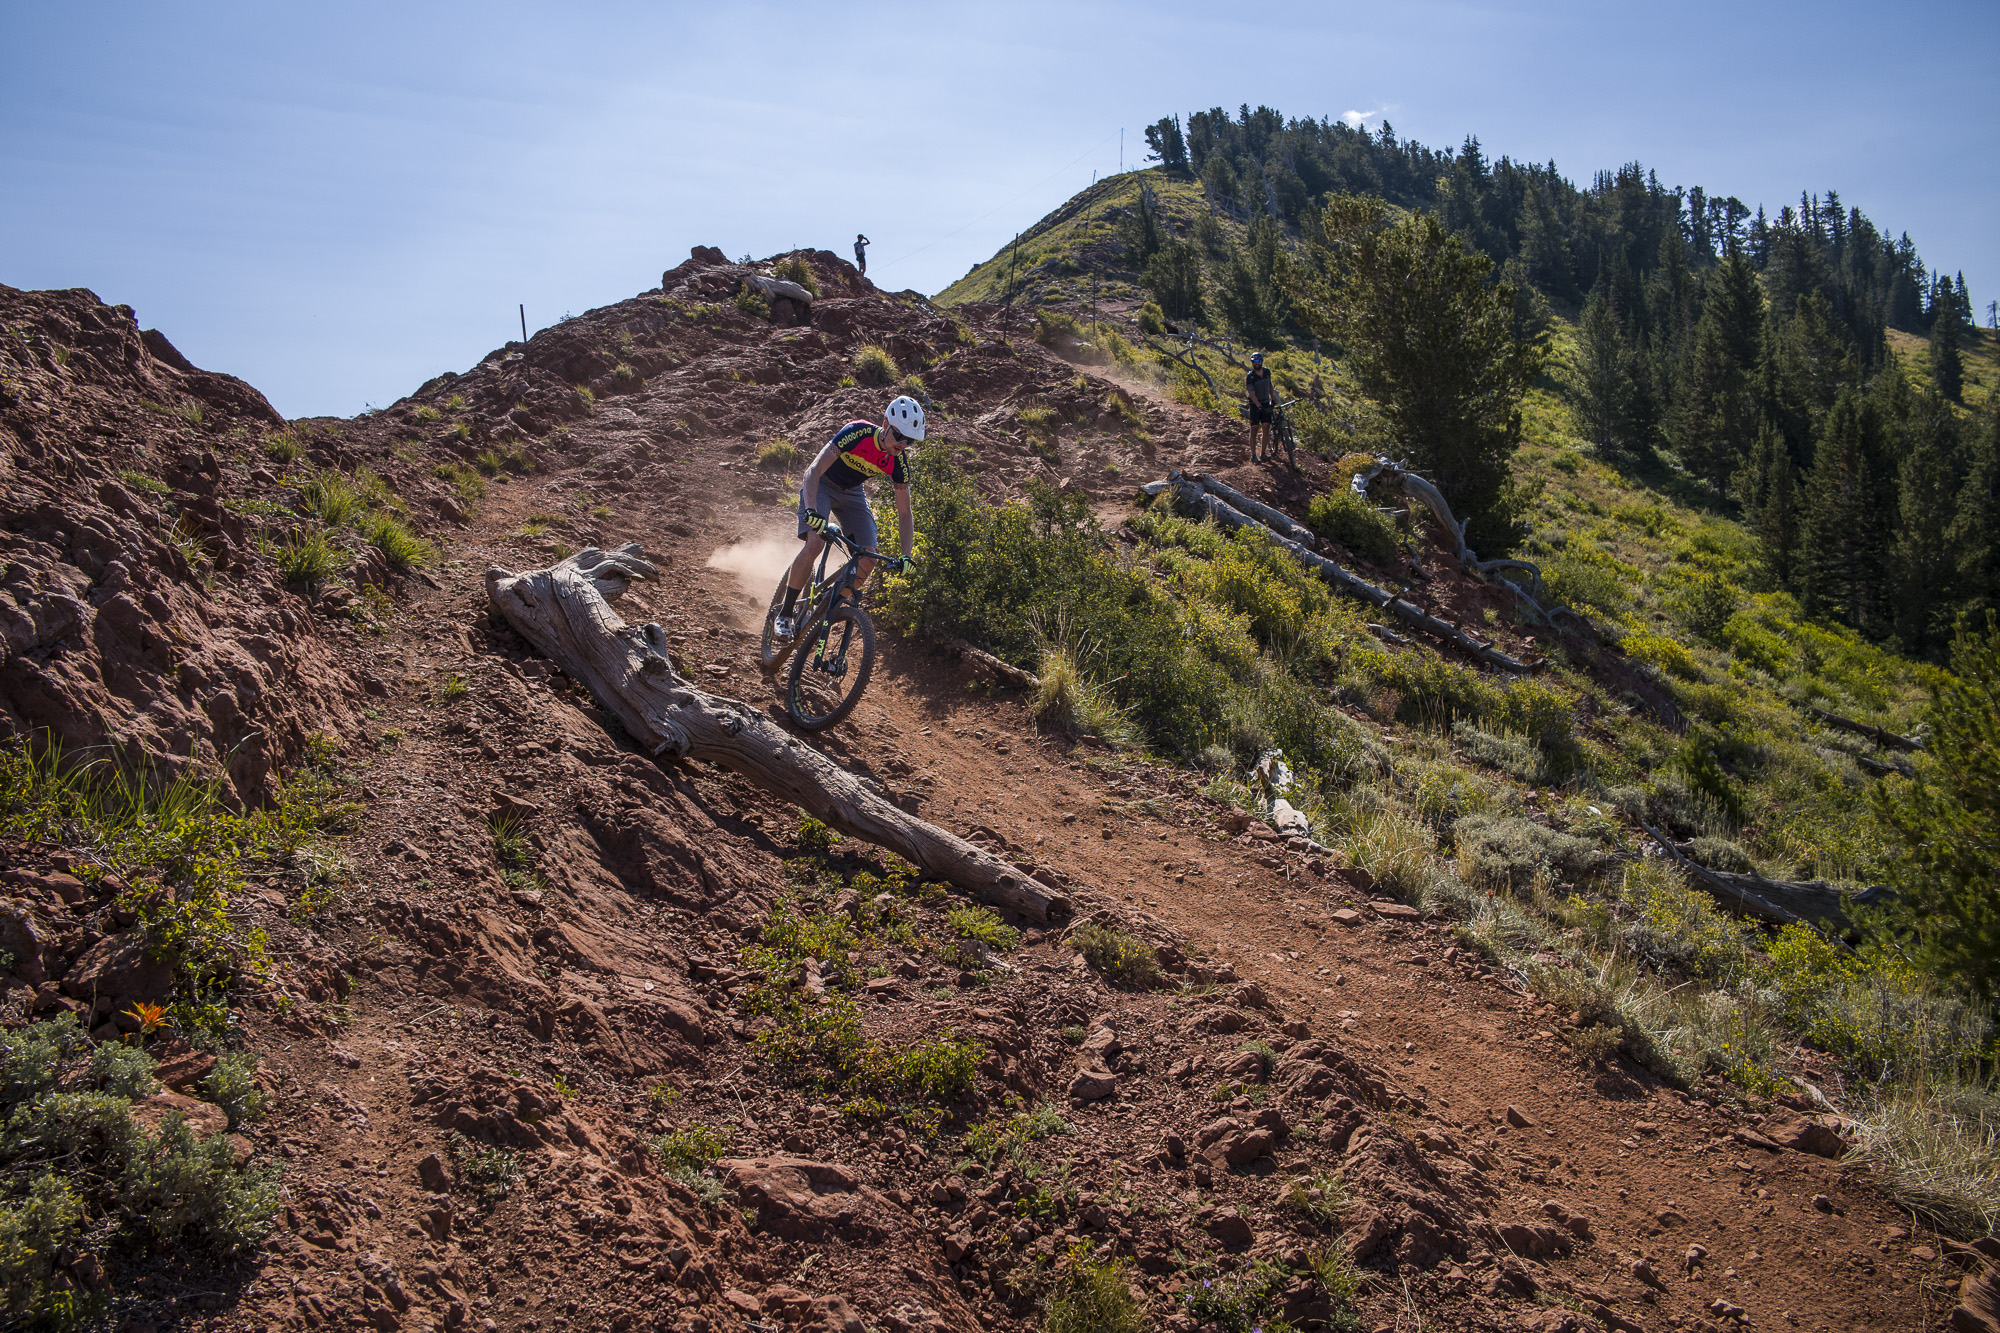 Miro riding the Crest Trail